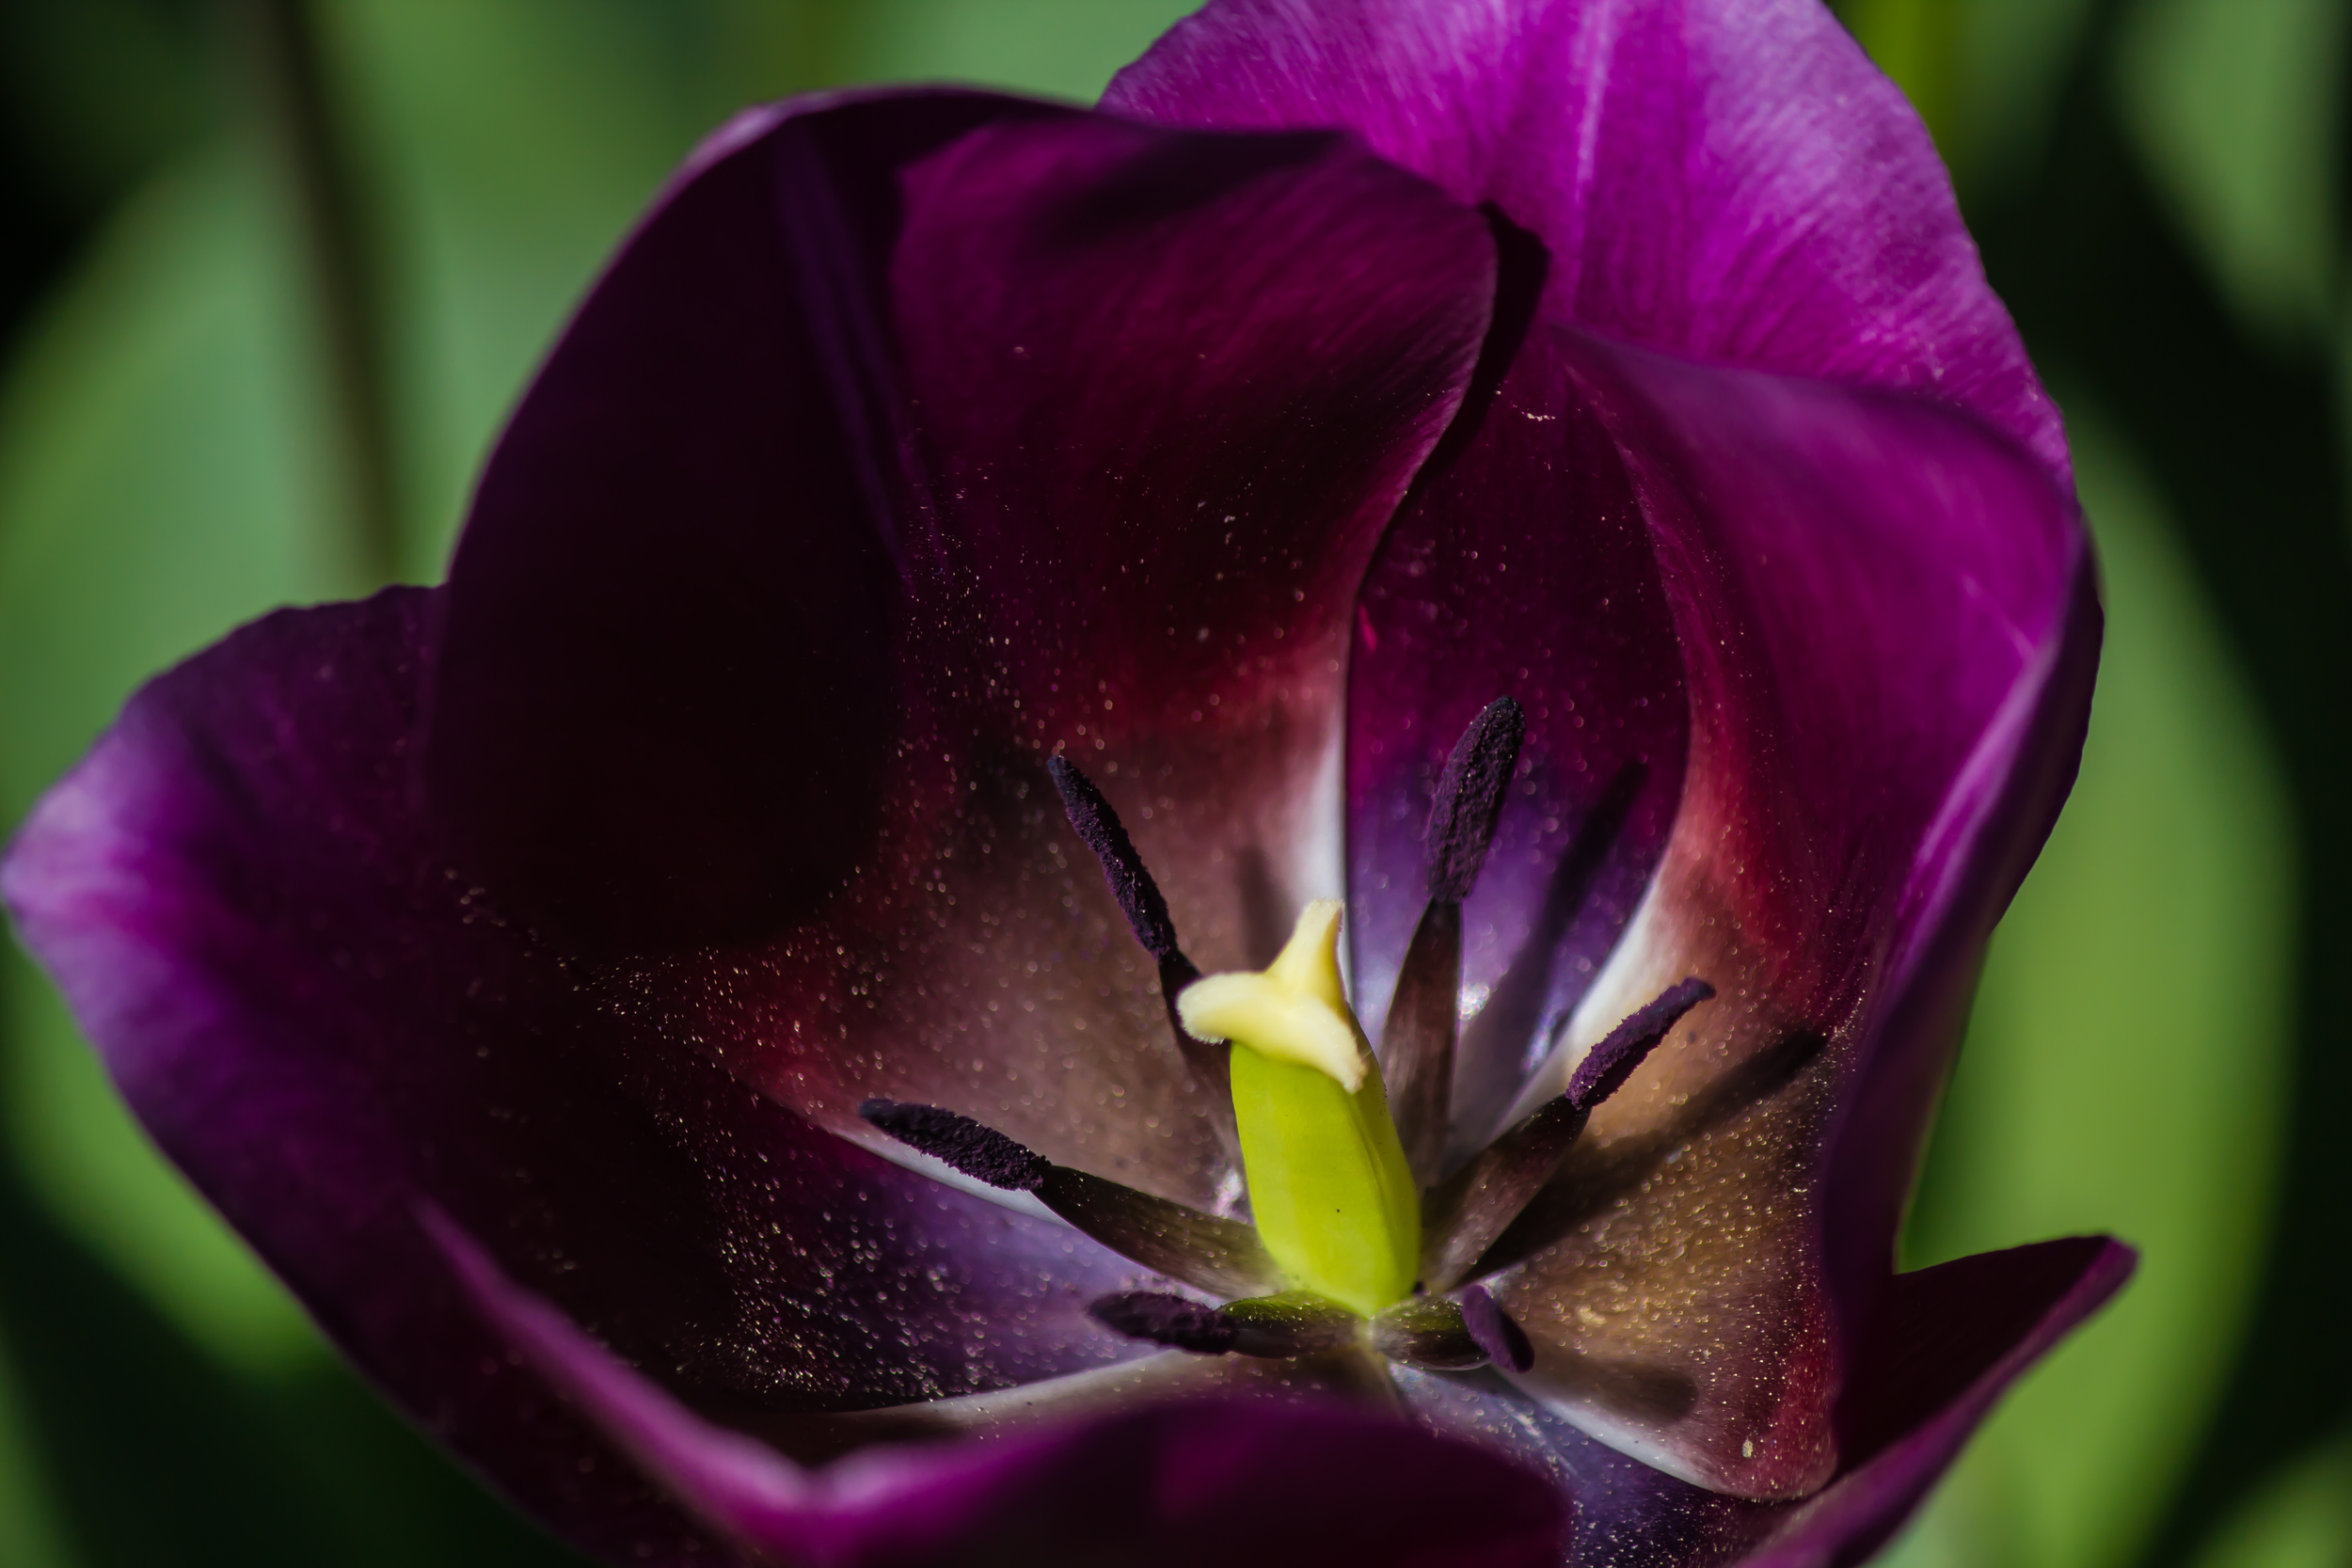 Inside Purple Tulip-1.jpg